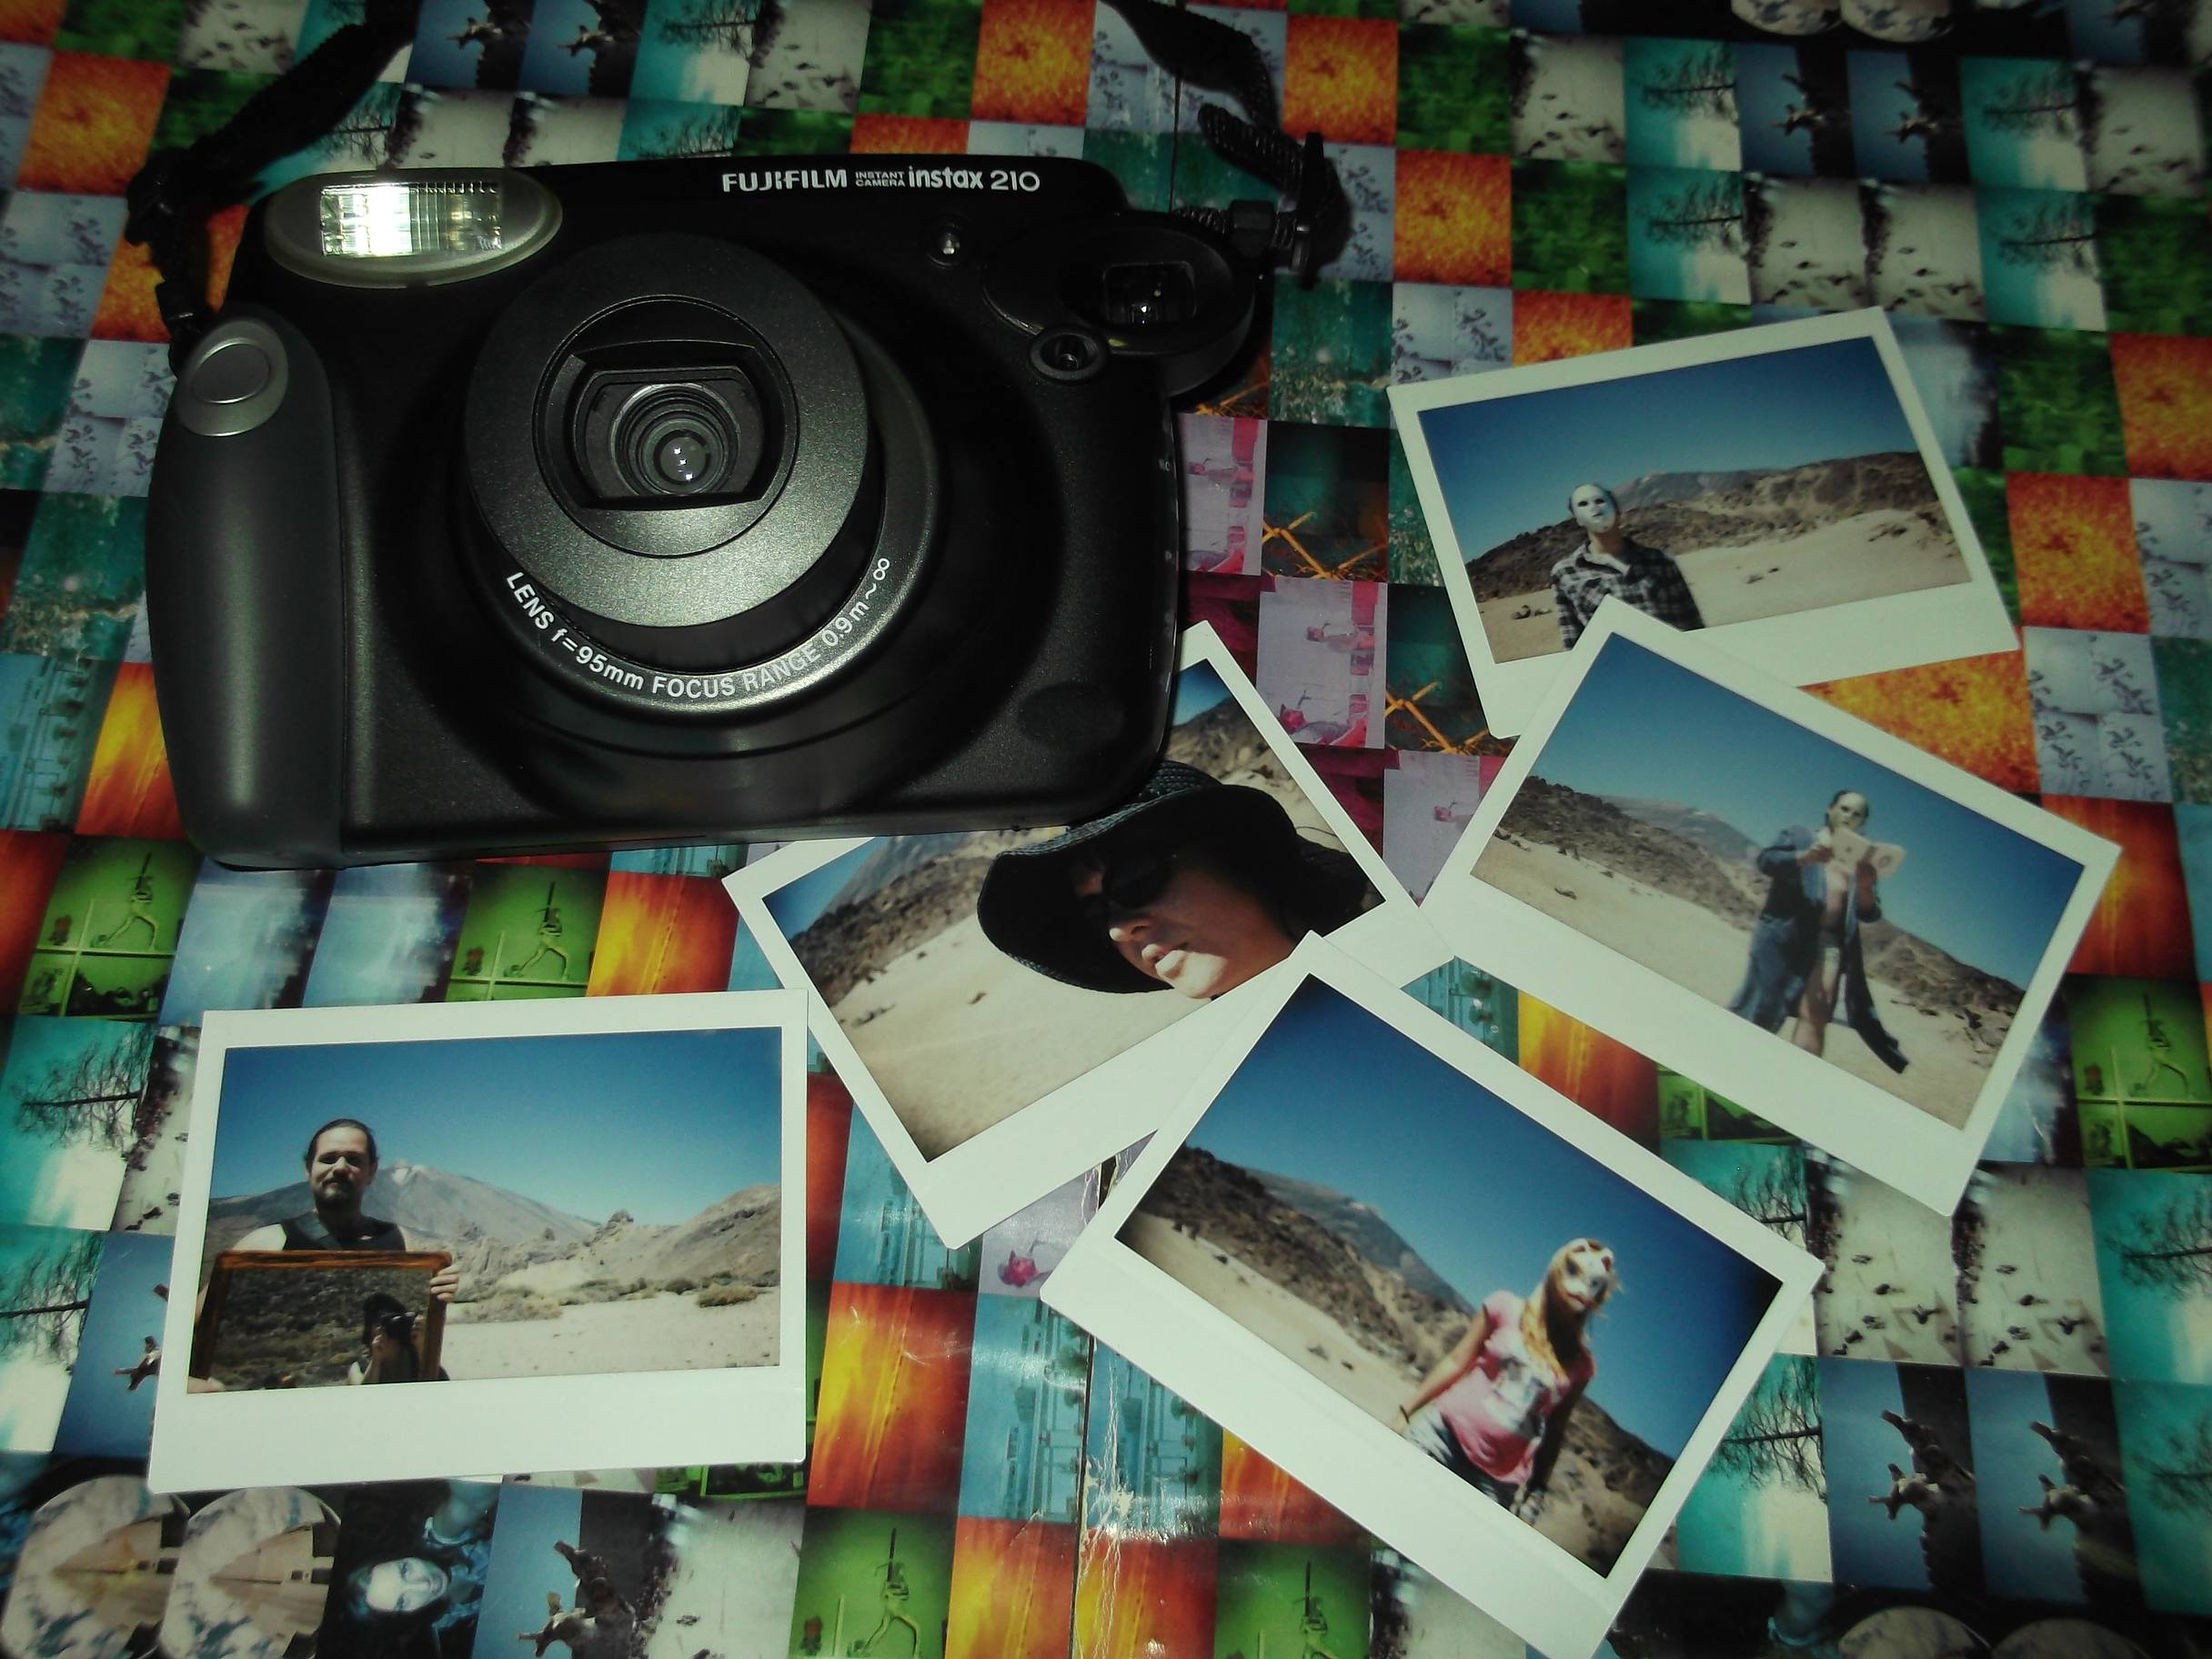 Previously I Had Tried A Friends Fuji Instax Mini Camera But The Photo Size Like Credit Card Didnt Satisfy Me So Decided To Buy My Father